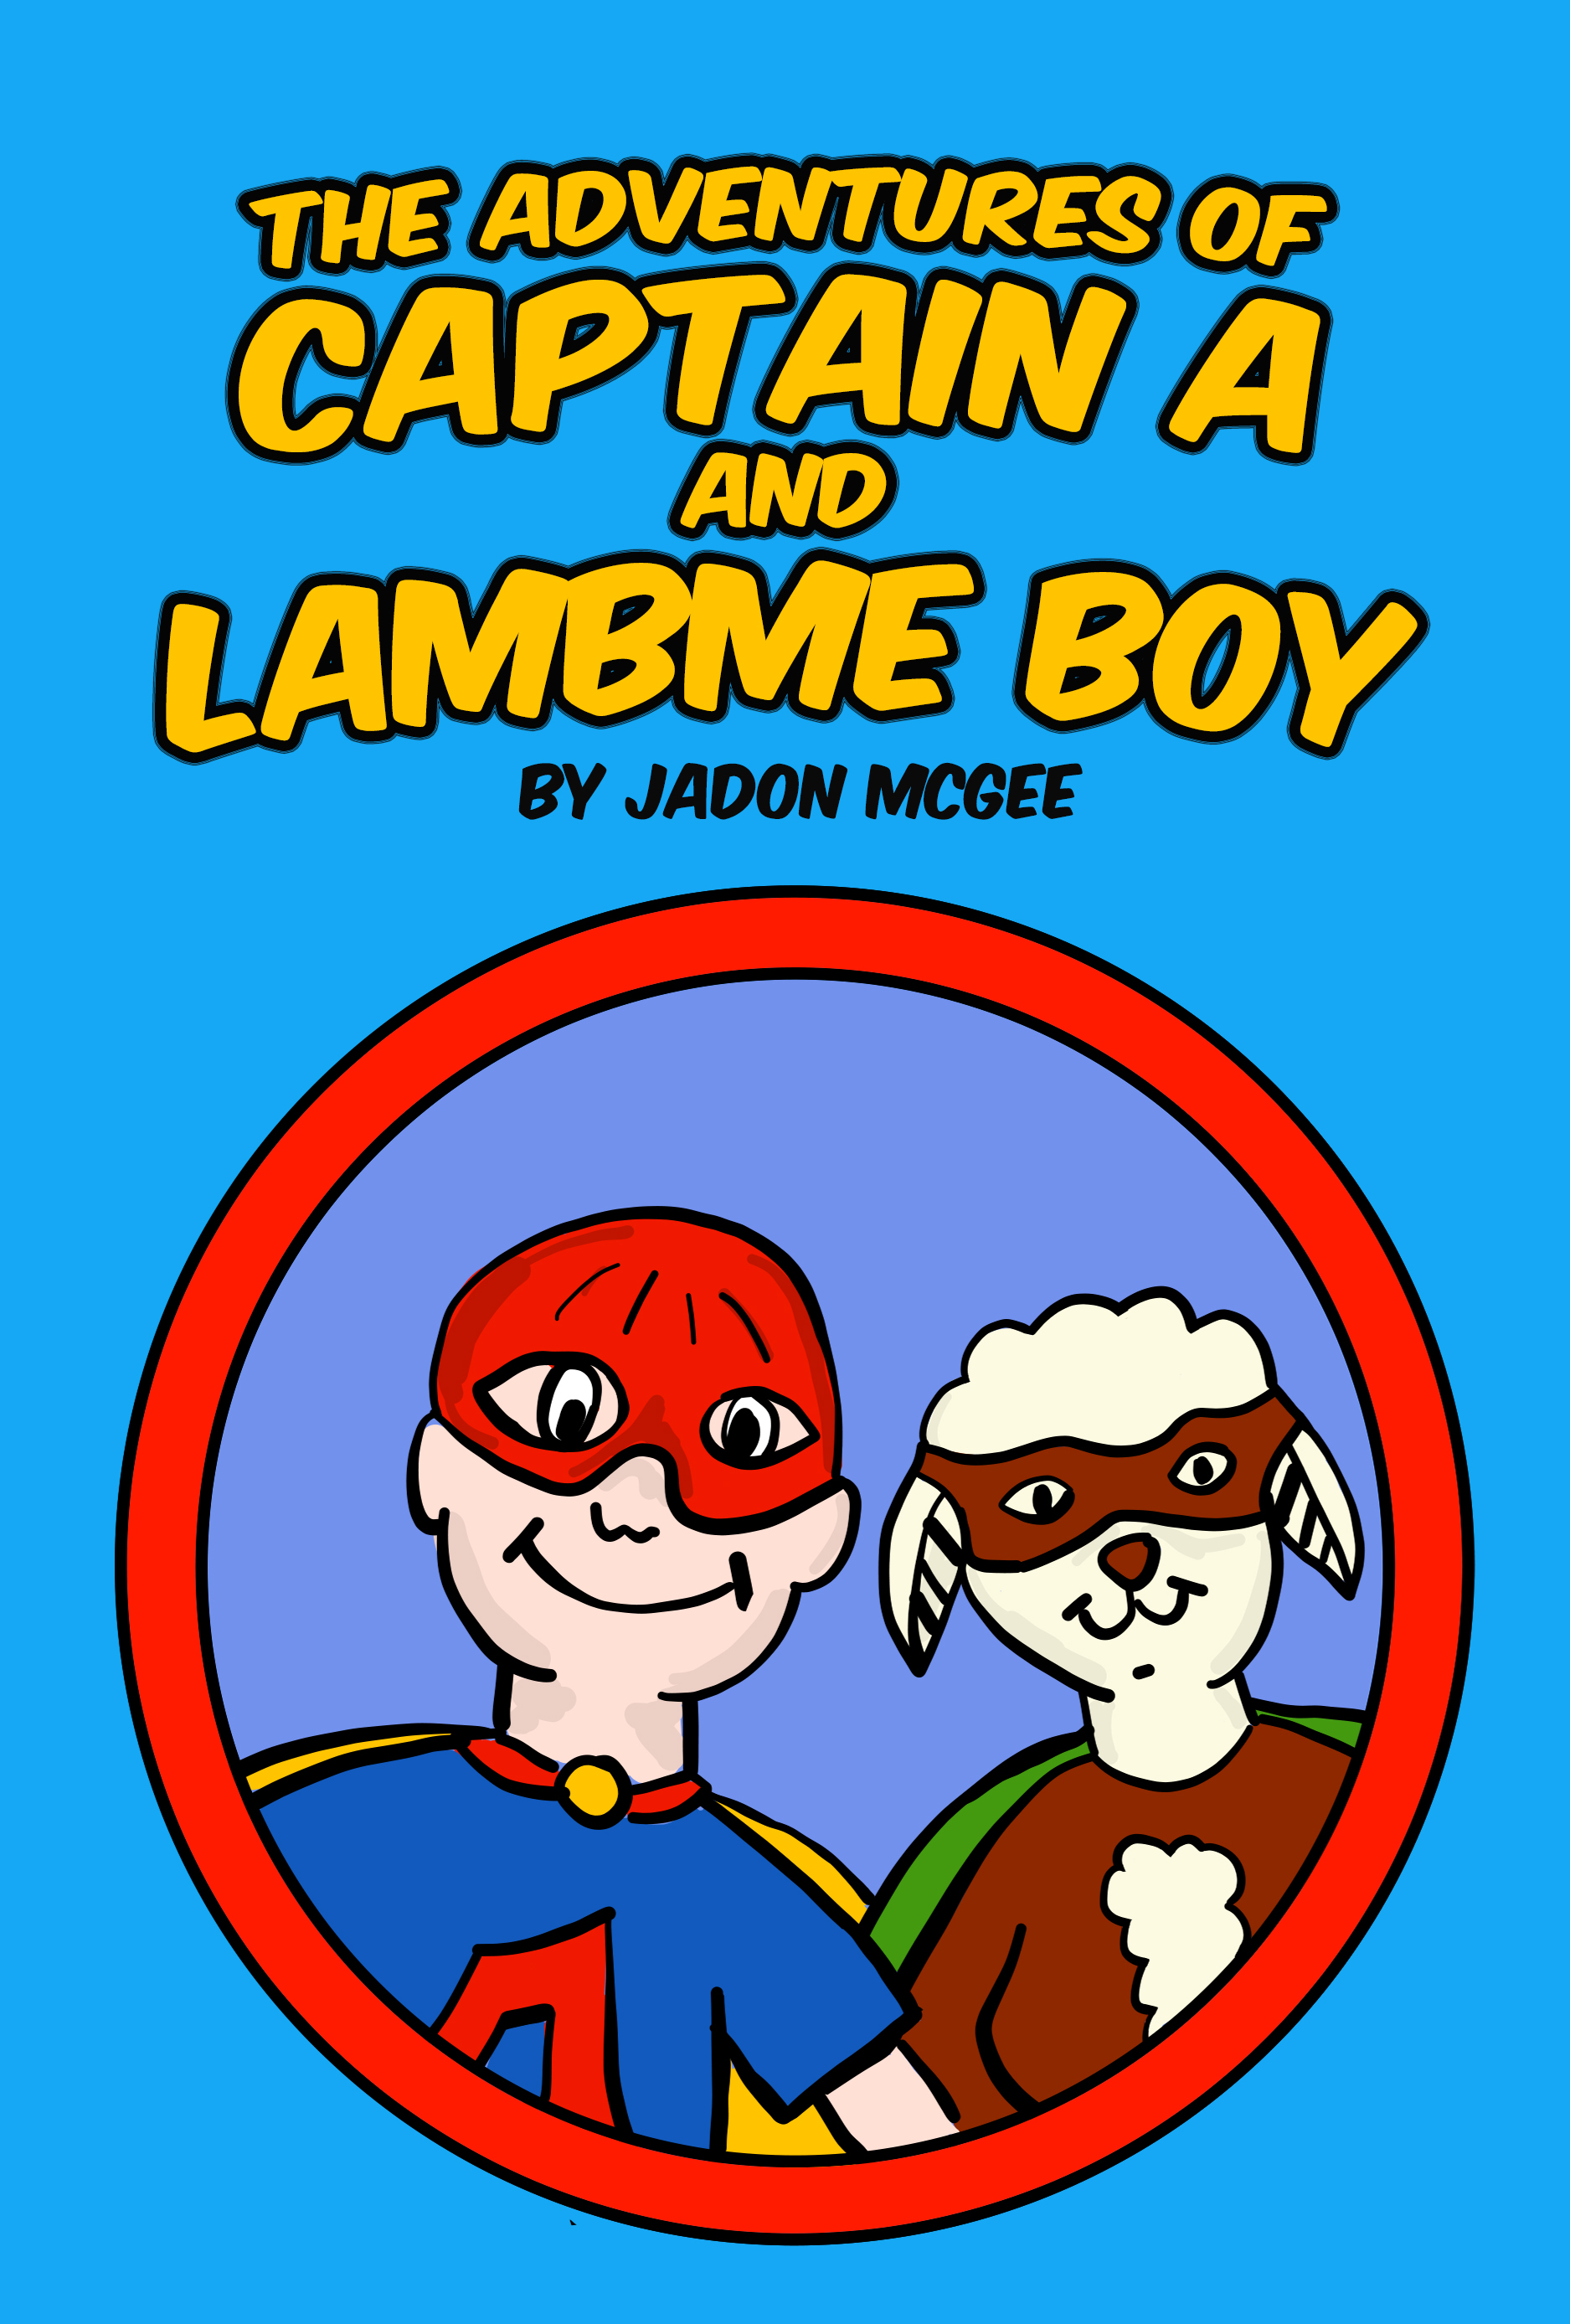 The Adventures of Captain A and Lambme Boy - Jadon McGee